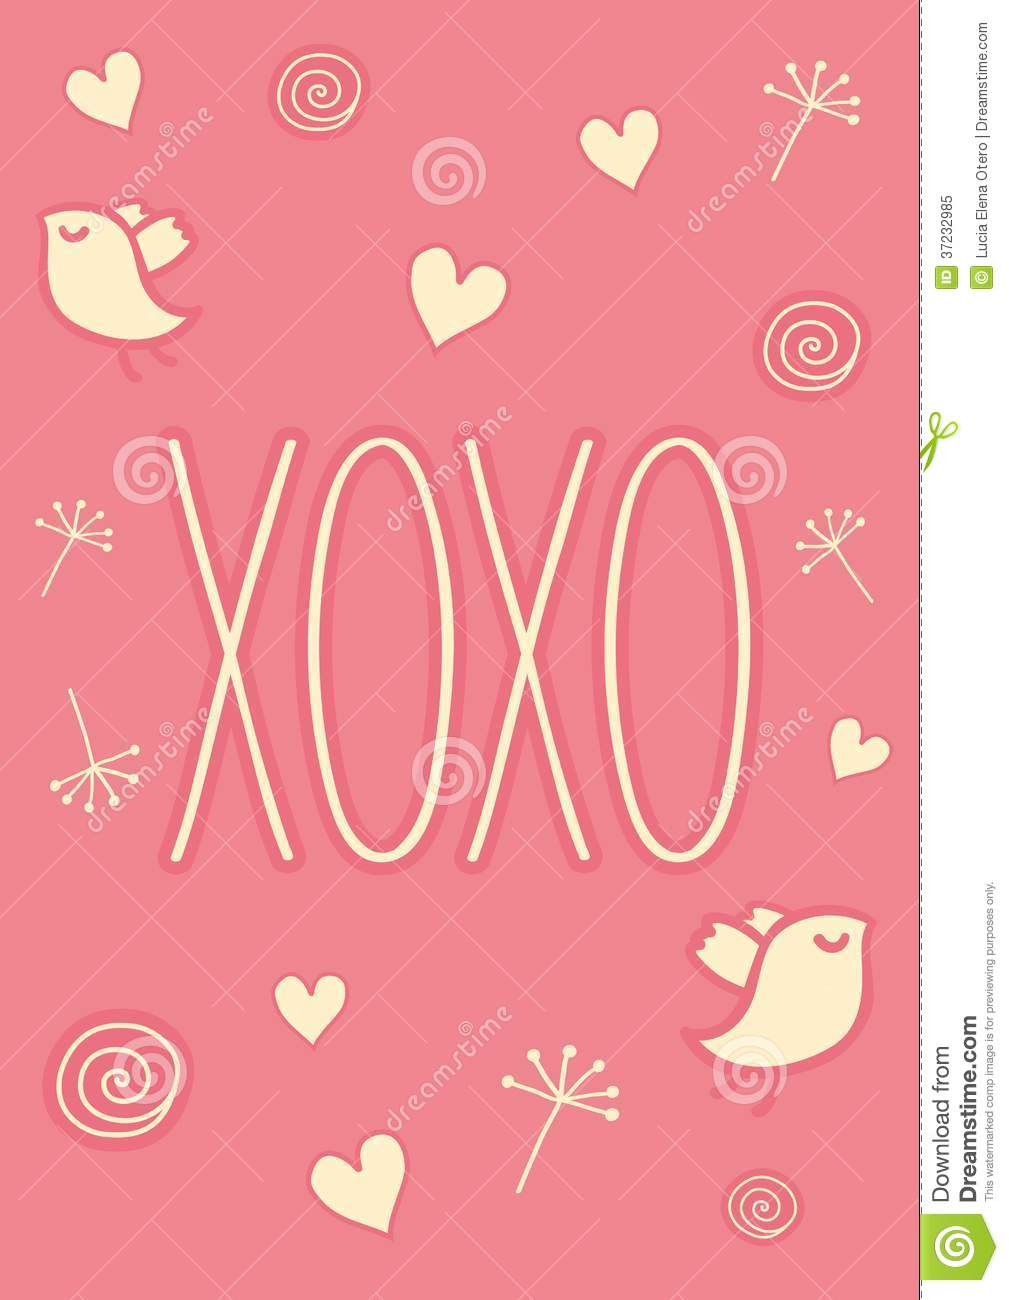 Hugs And Kisses Xoxo Clipart Hand-drawn-xoxo-card-valentines-day ...